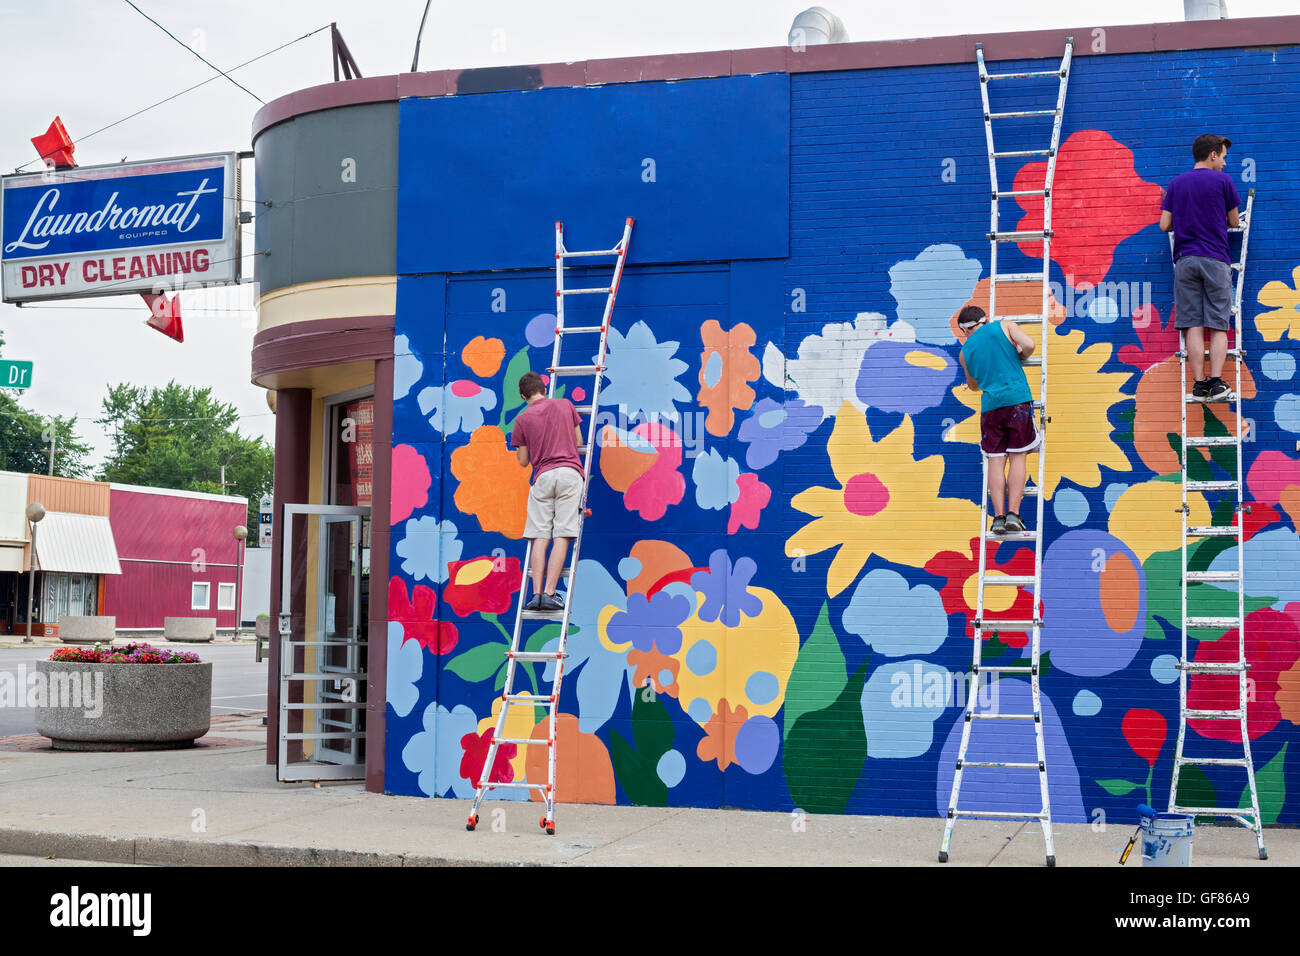 Detroit, Michigan - Youth paint the wall of a laundromat in the Morningside neighborhood. - Stock Image